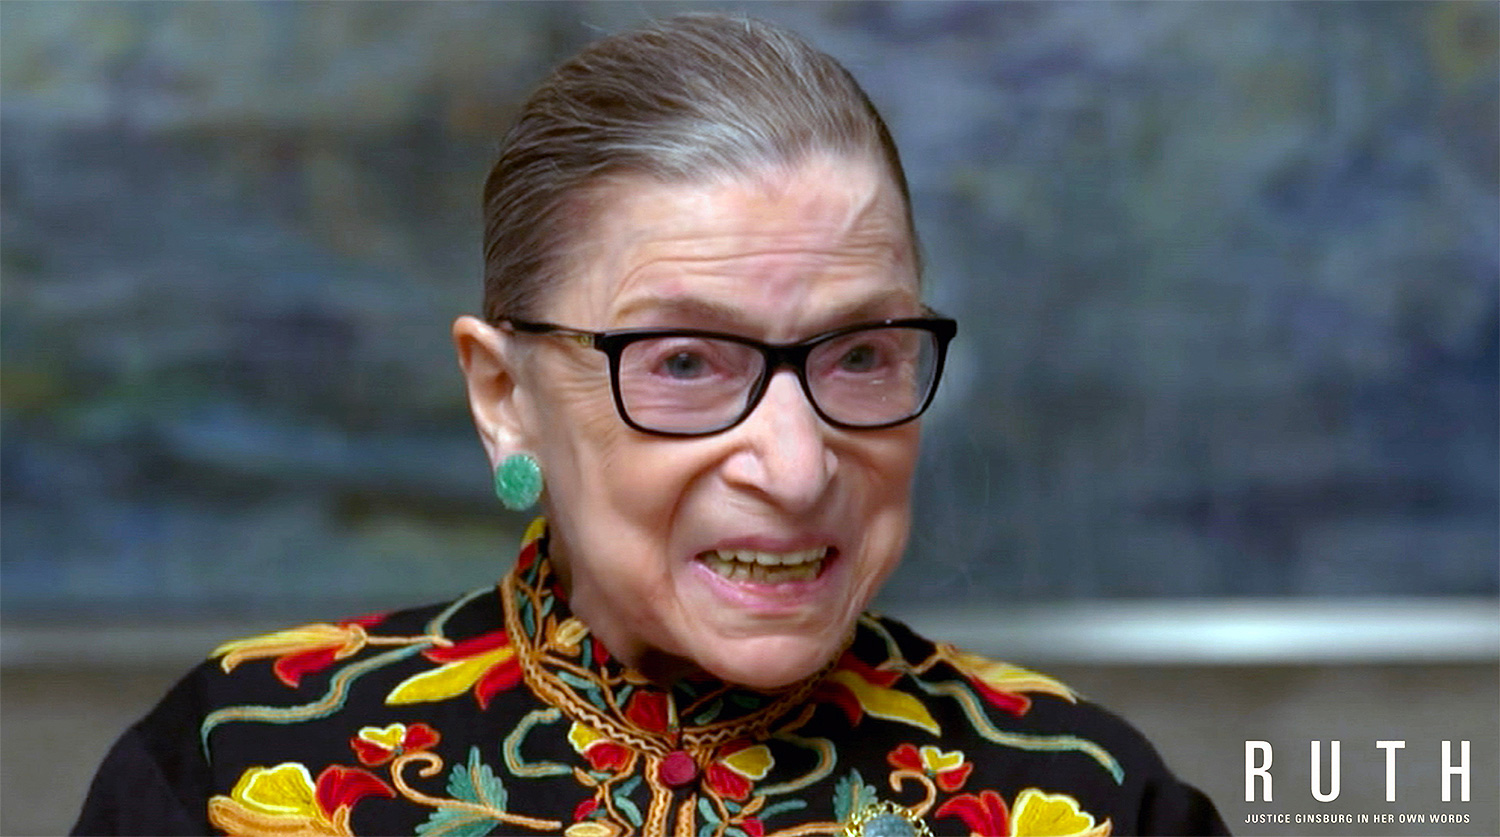 New Documentary Ruth Shows Unseen Footage of RBG's Life